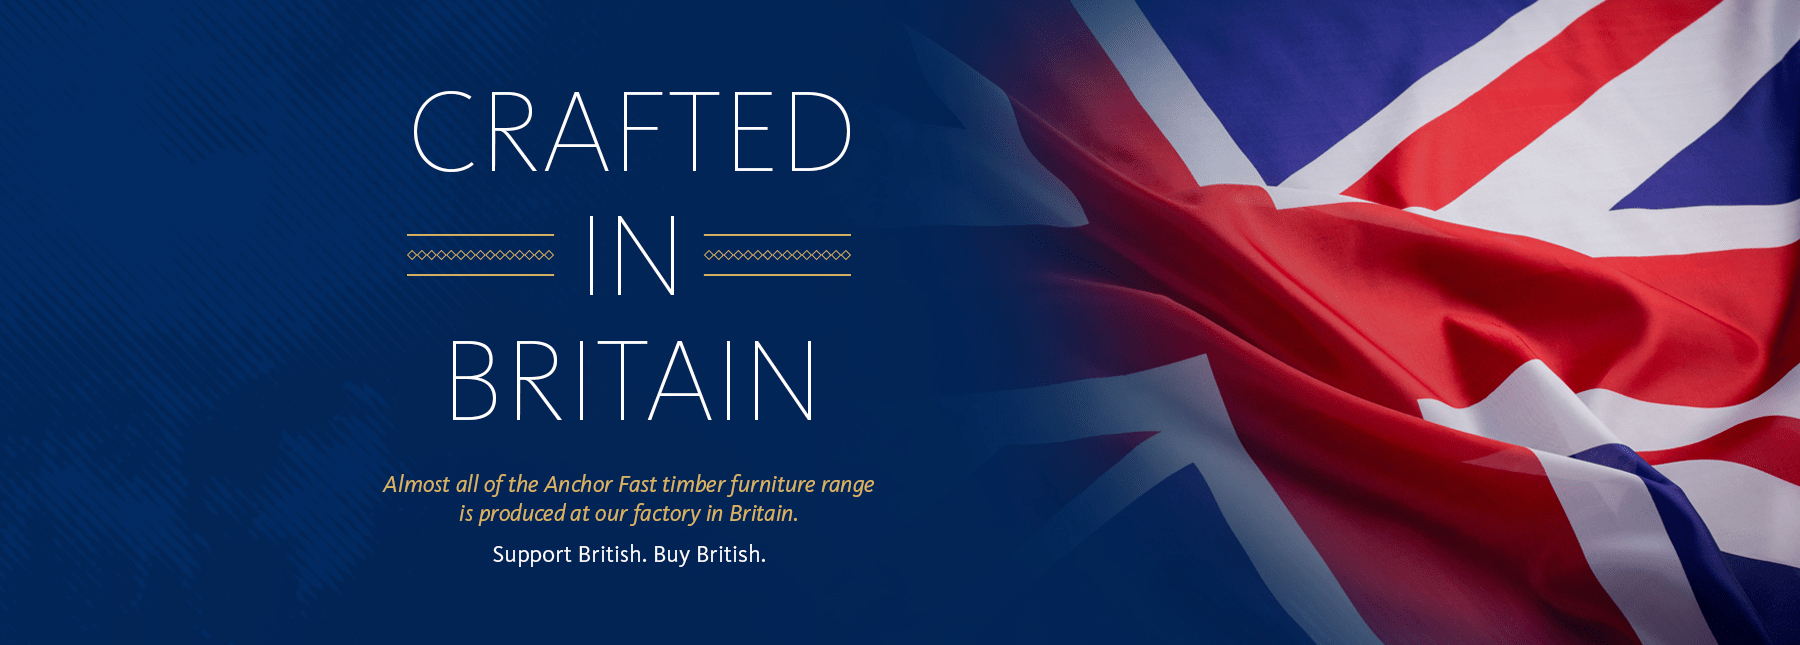 anchor fast crafted in britain banner